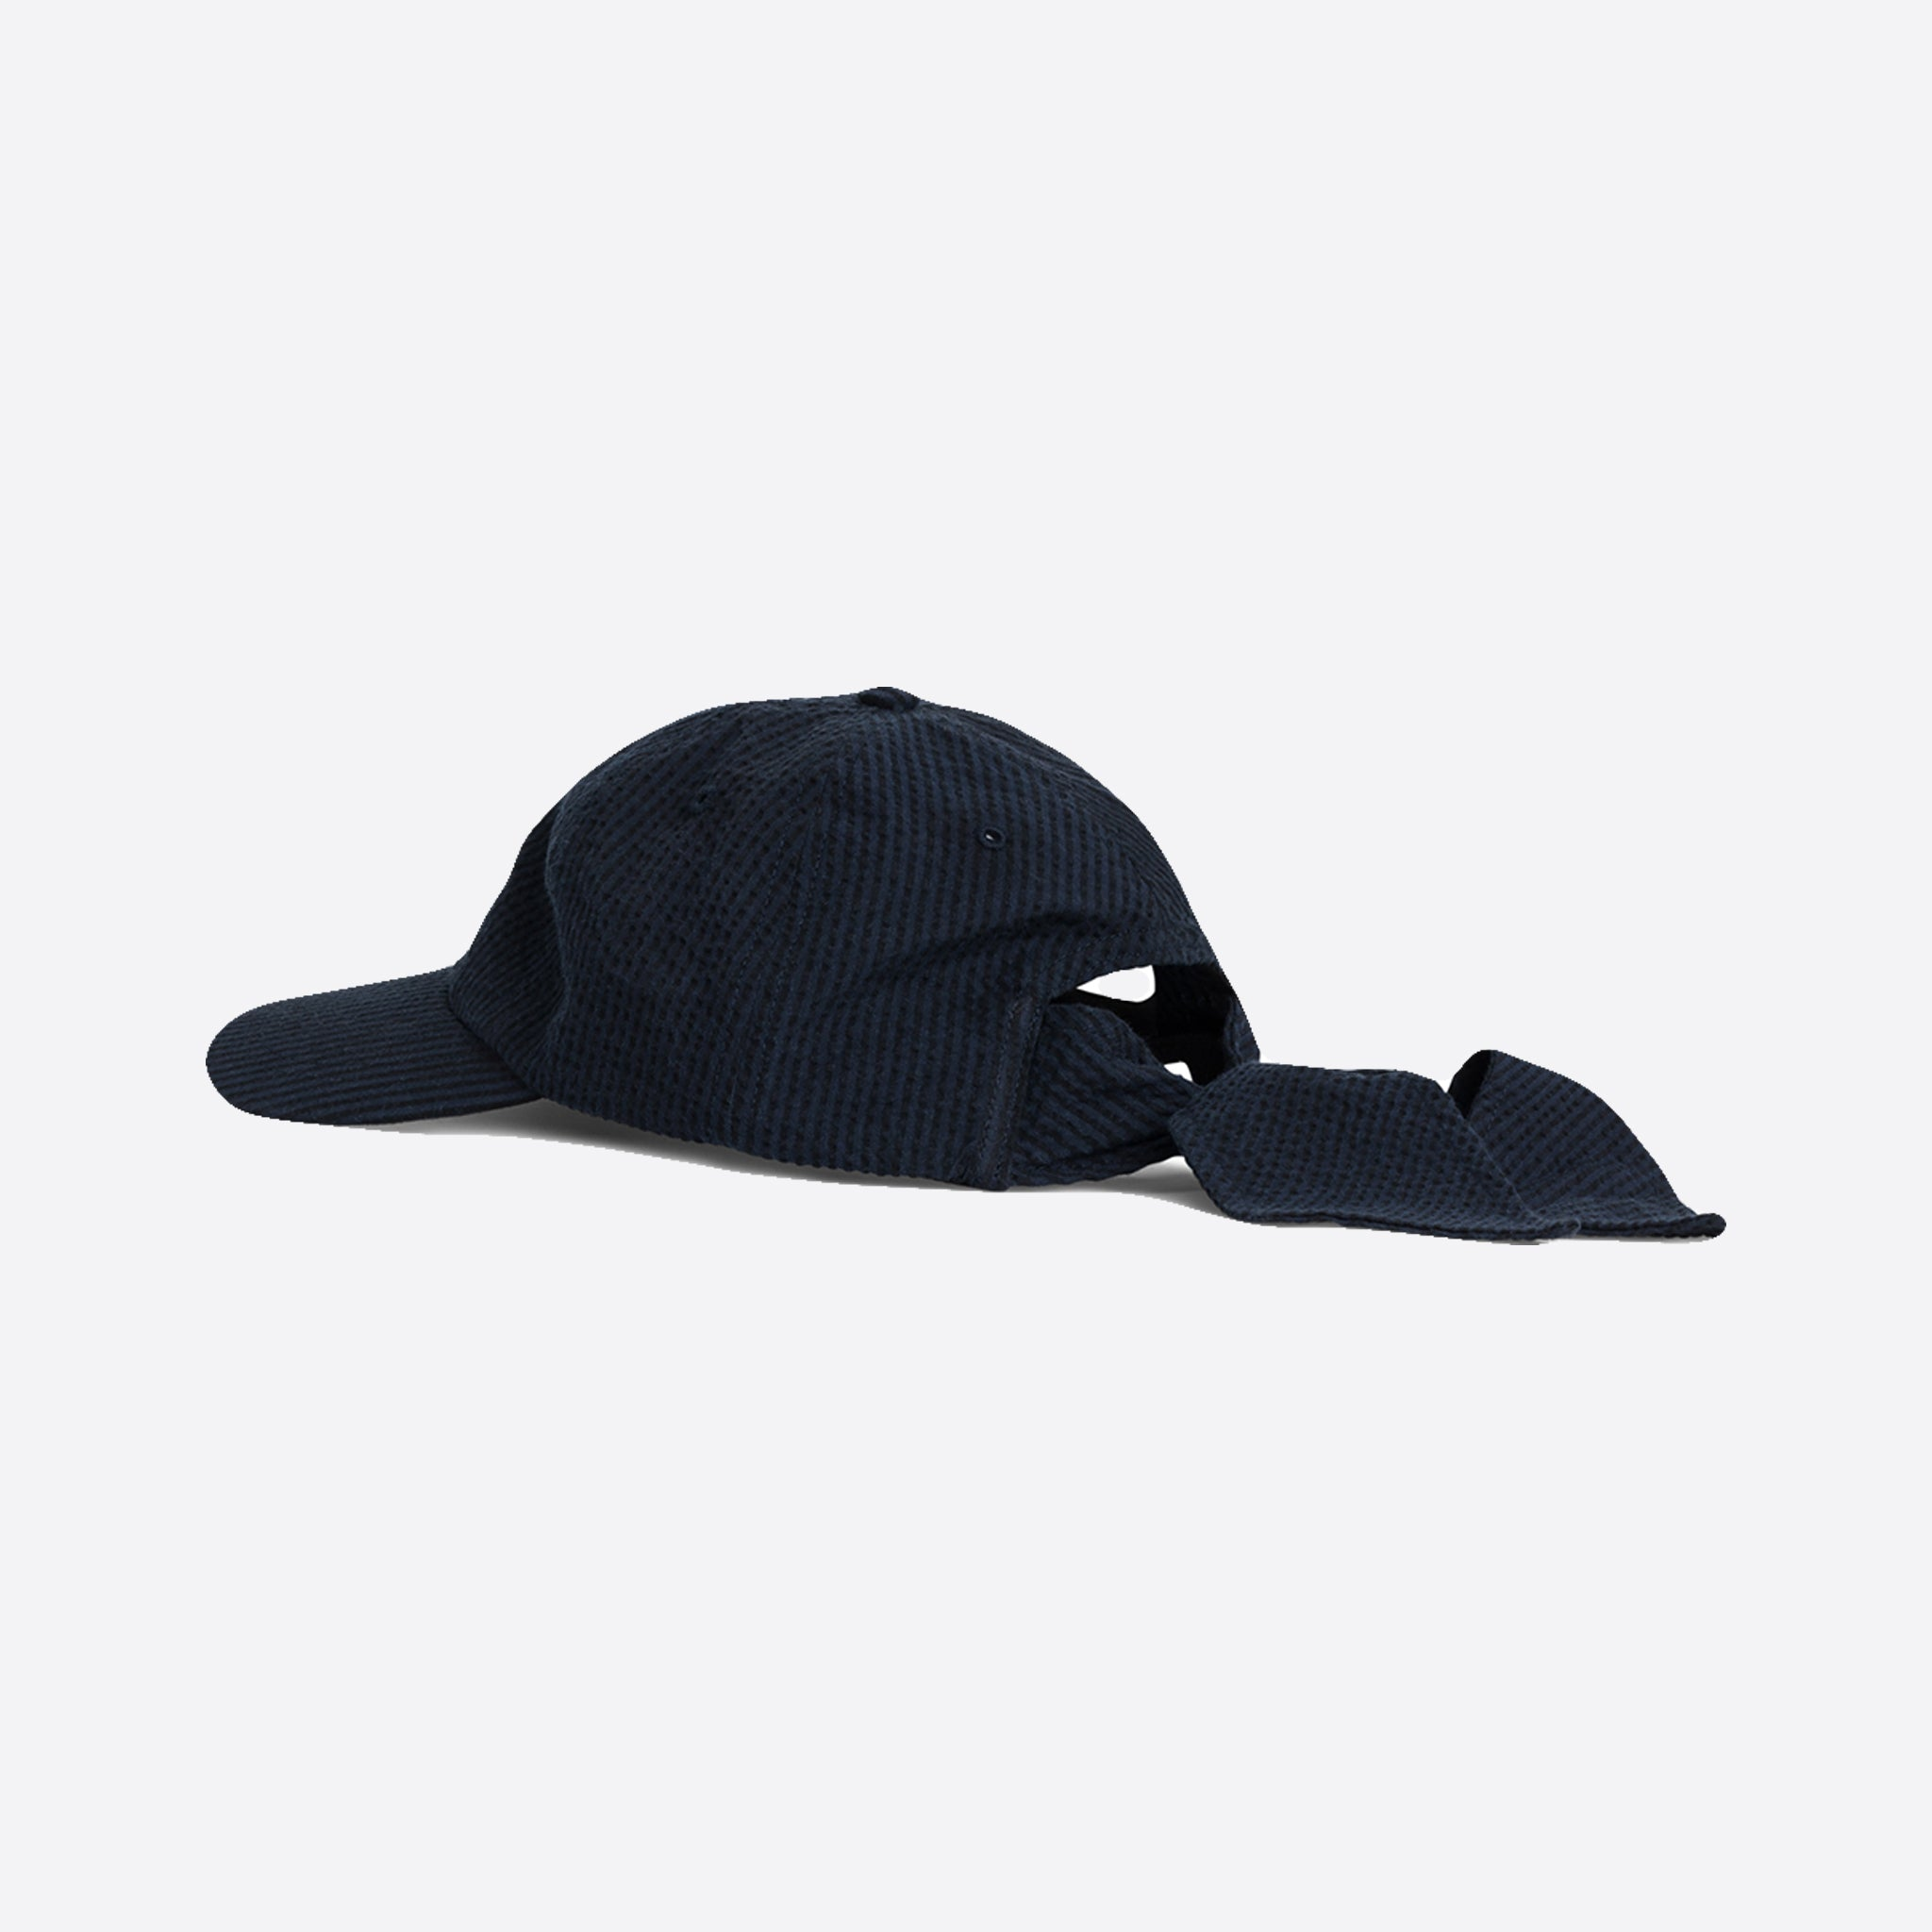 22a8bc2e17 Norse Projects Seersucker Sports Cap in Dark Navy — Our Daily Edit